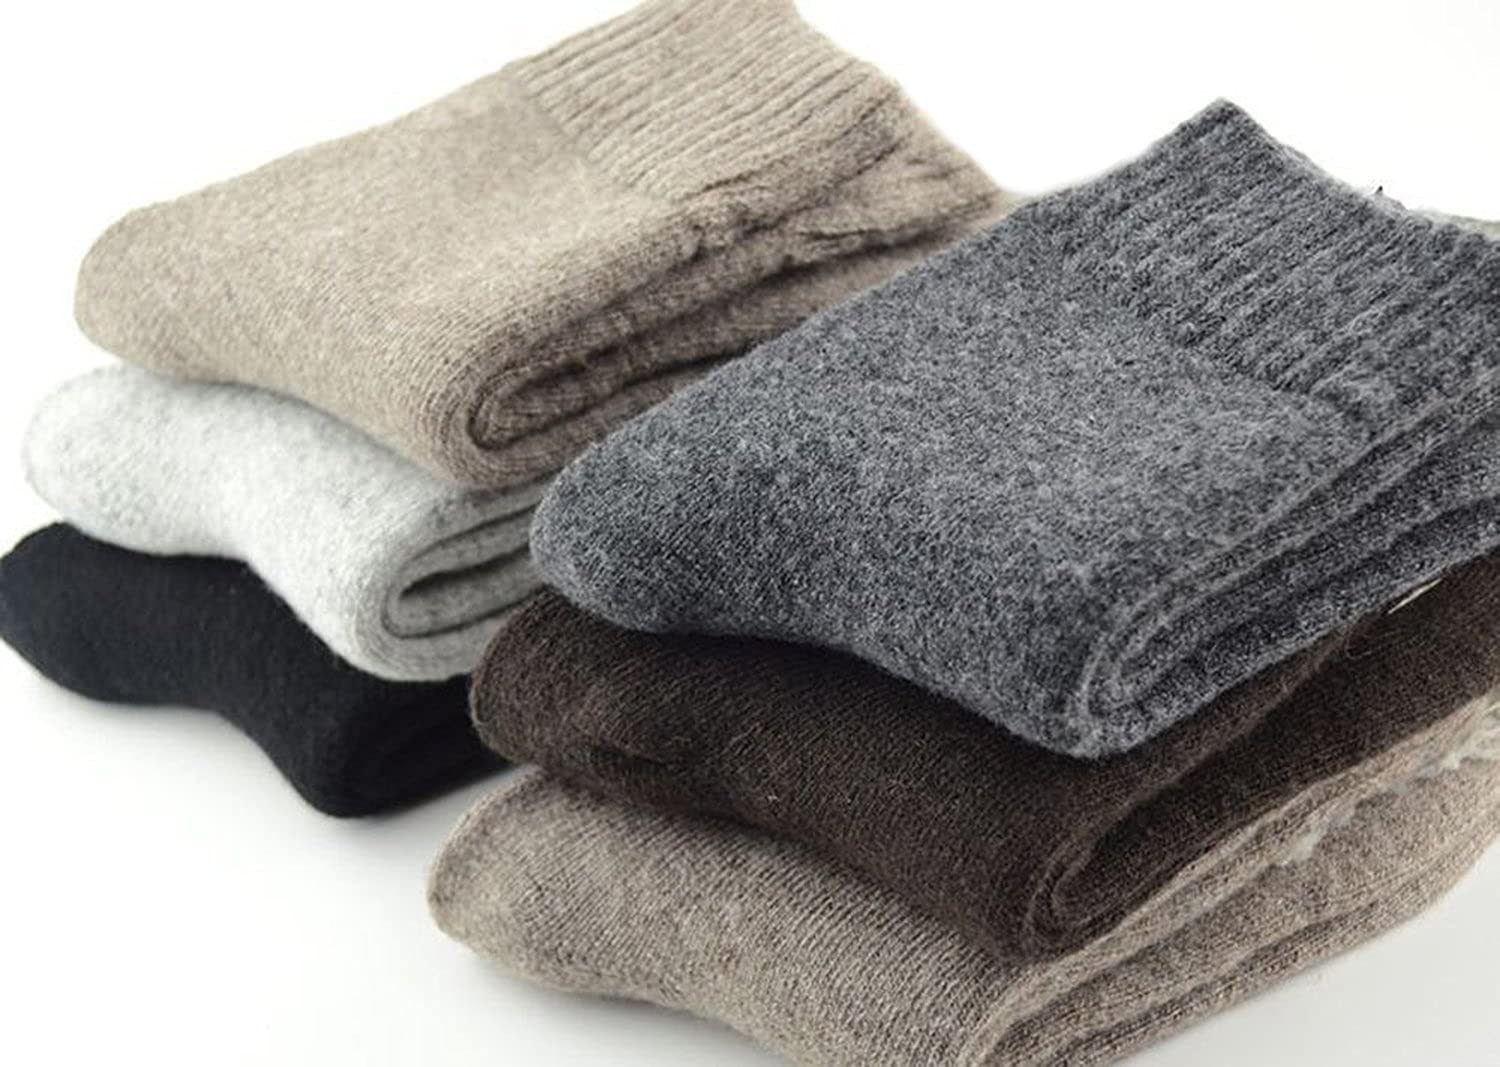 EBMORE Mens Wool Socks Heavy Thick Socks Thermal Fuzzy Warm Comfort Crew Winter Socks 5 Pack